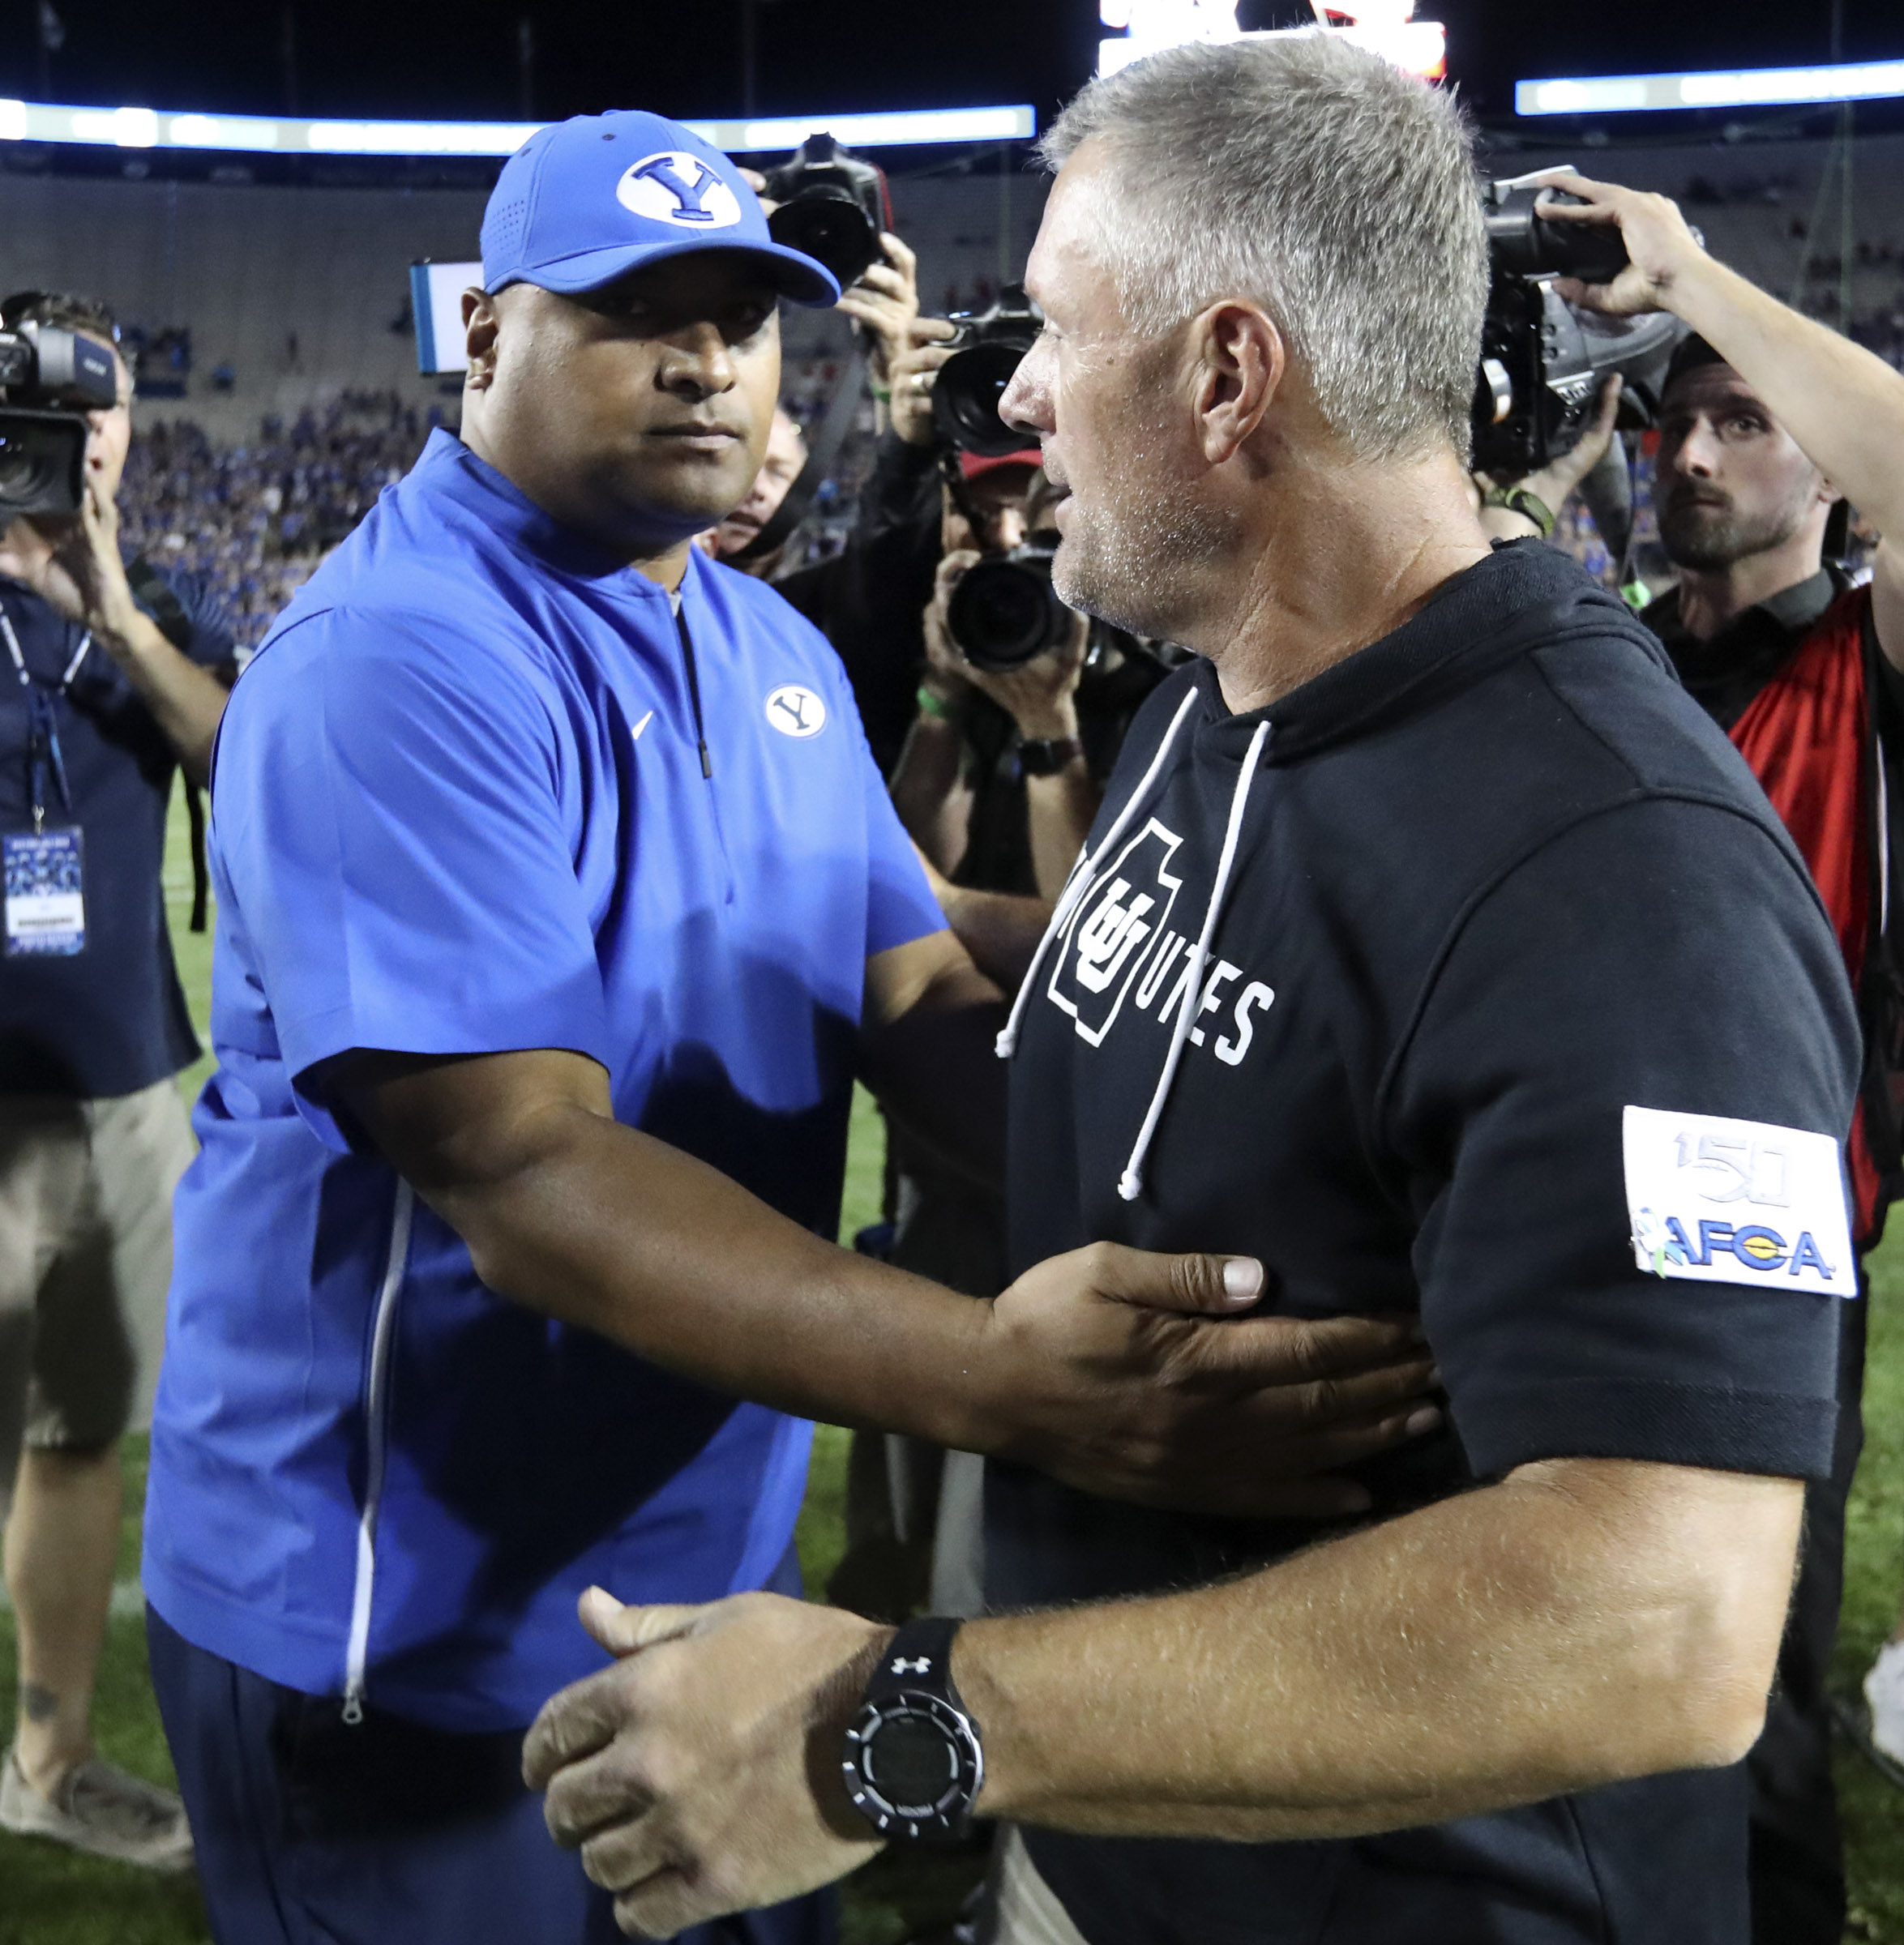 BYU head coach Kalani Sitake and Utah head coach Kyle Whittingham congratulate each other after Utah defeated BYU 30-12 at LaVell Edwards Stadium in Provo on Friday, Aug. 30, 2019.